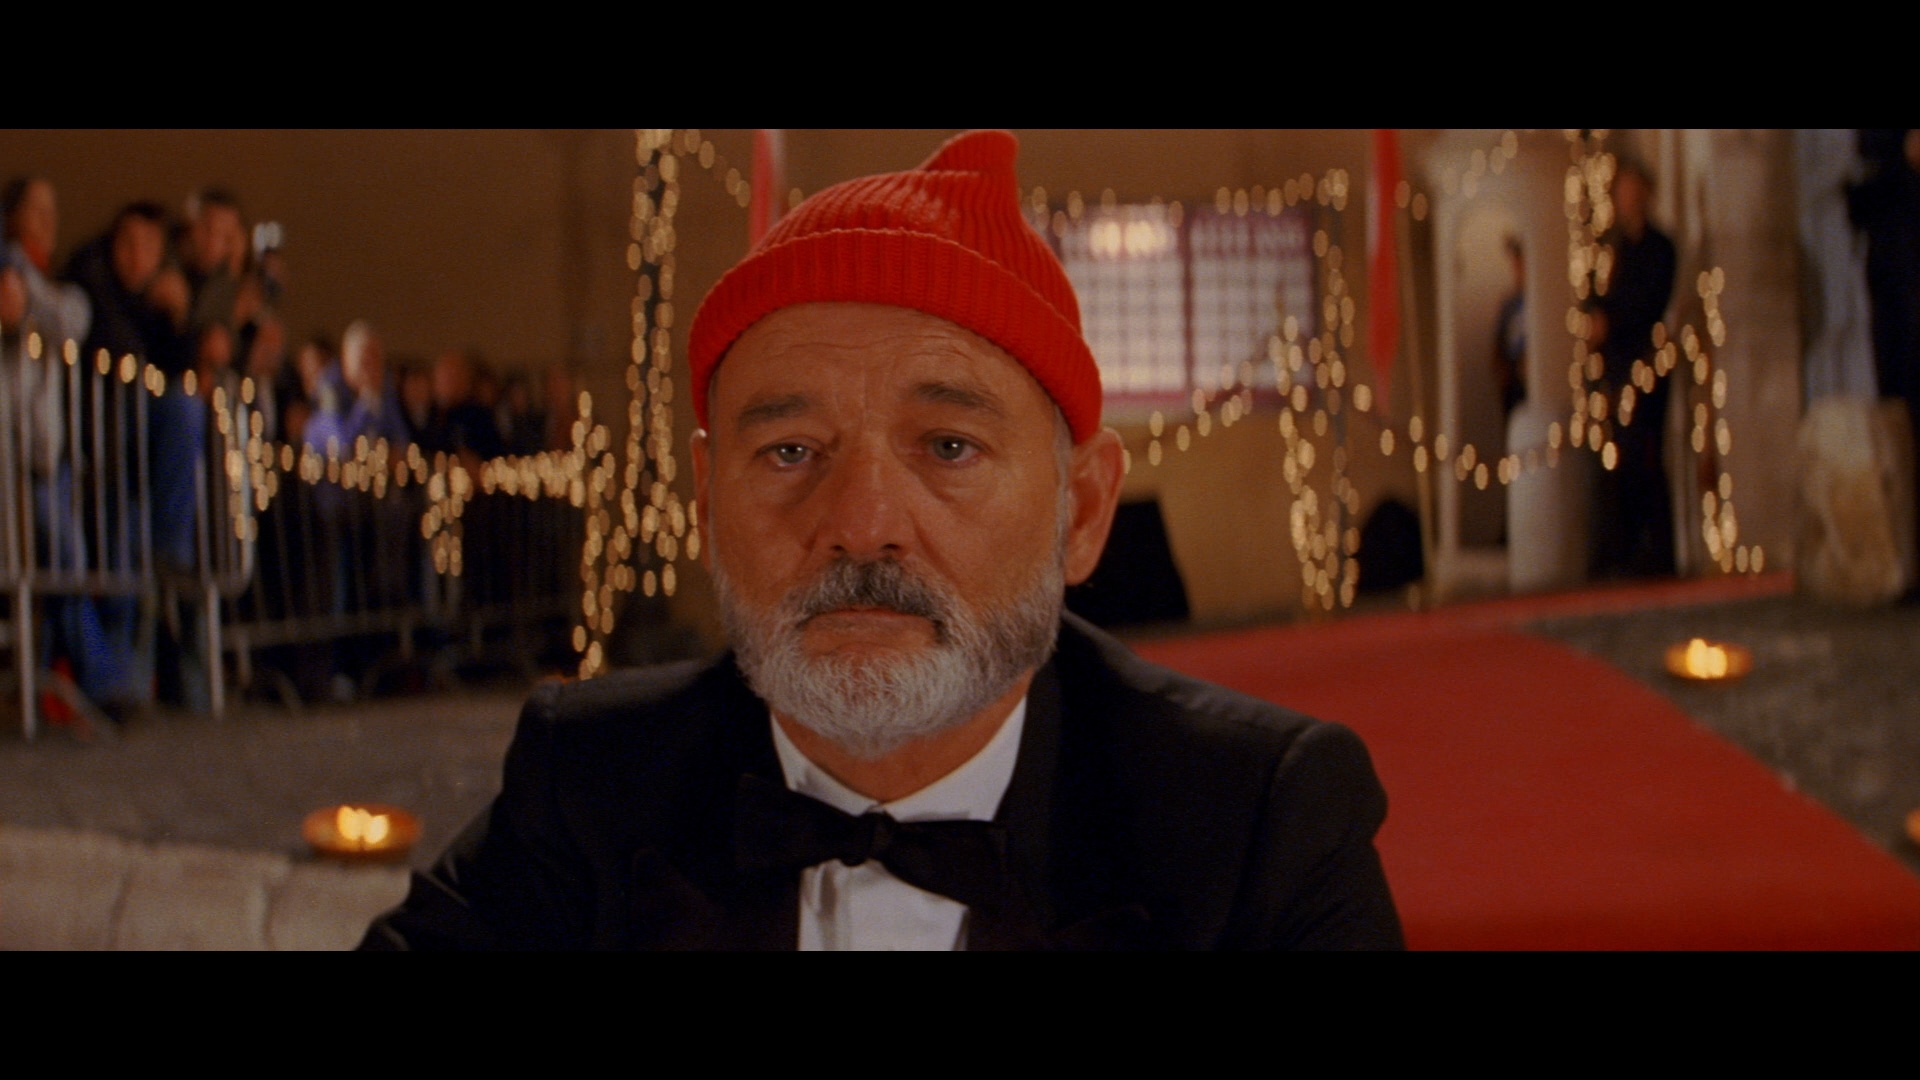 https://i0.wp.com/www.dvdbeaver.com/film4/blu-ray_reviews_61/the_life_aquatic_with_steve_zissou_blu-ray_/large/large_life_aquatic_X10_blu-ray_.jpg